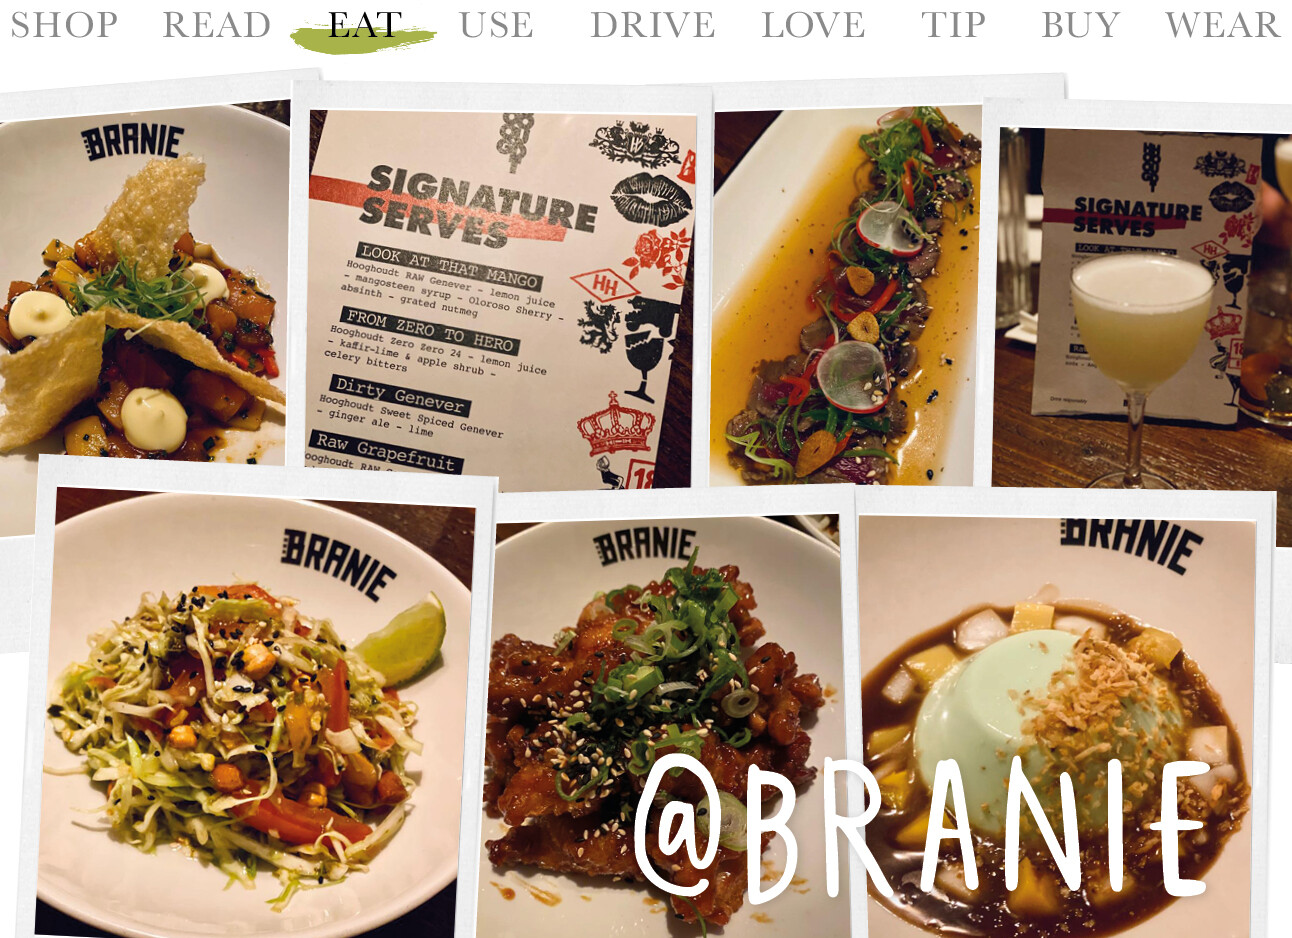 Today we eat at Branie